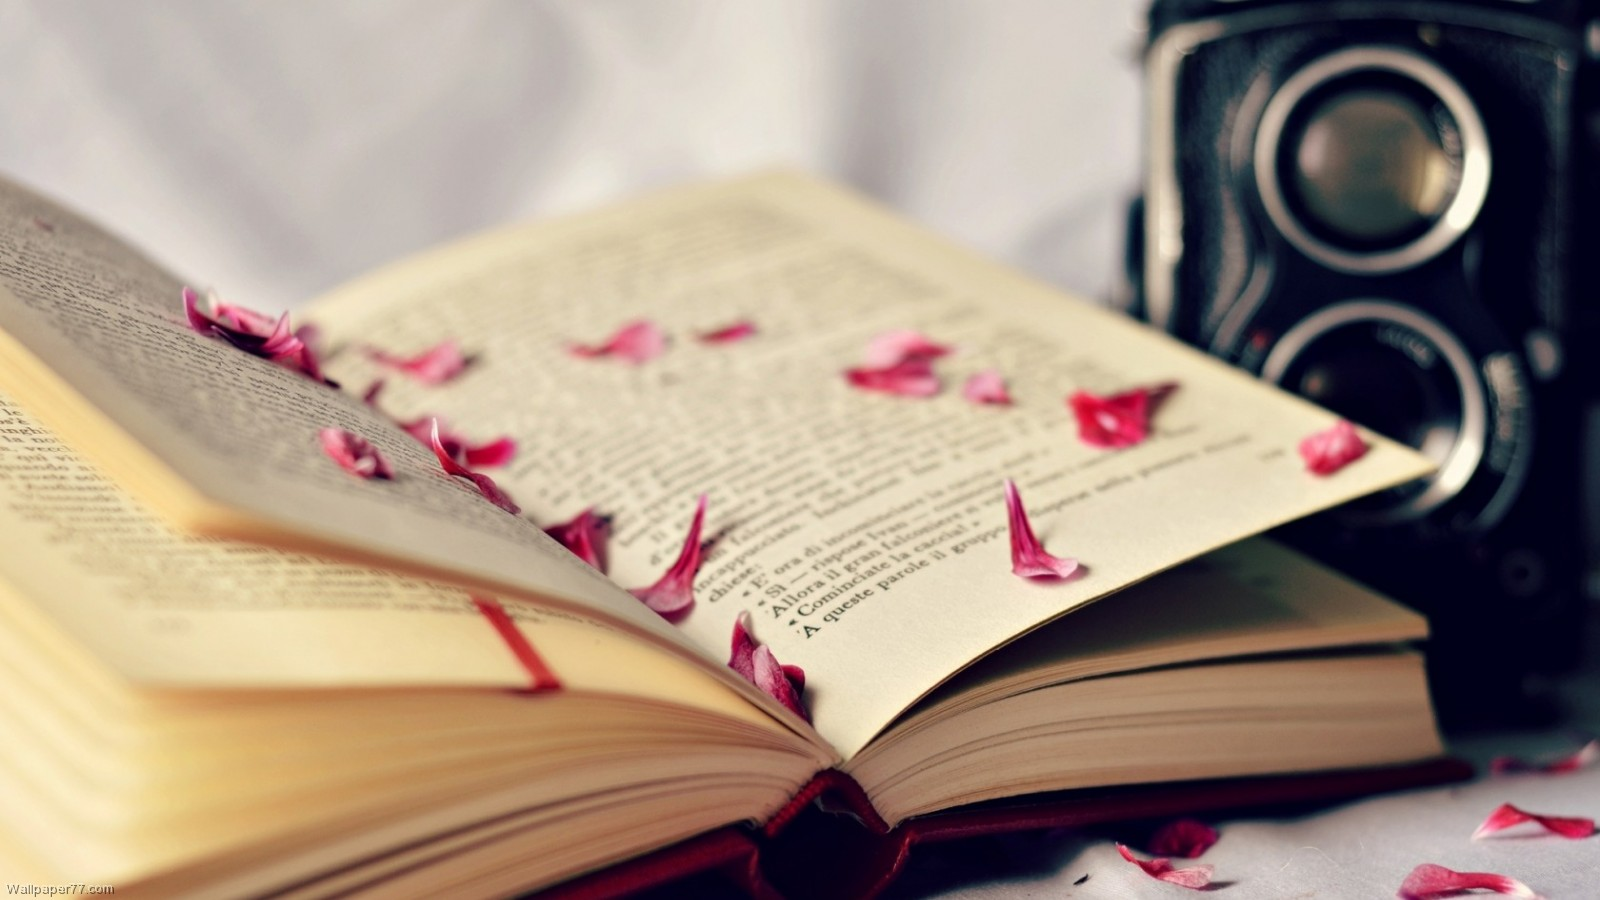 Book Lover Wallpaper Wallpapersafari